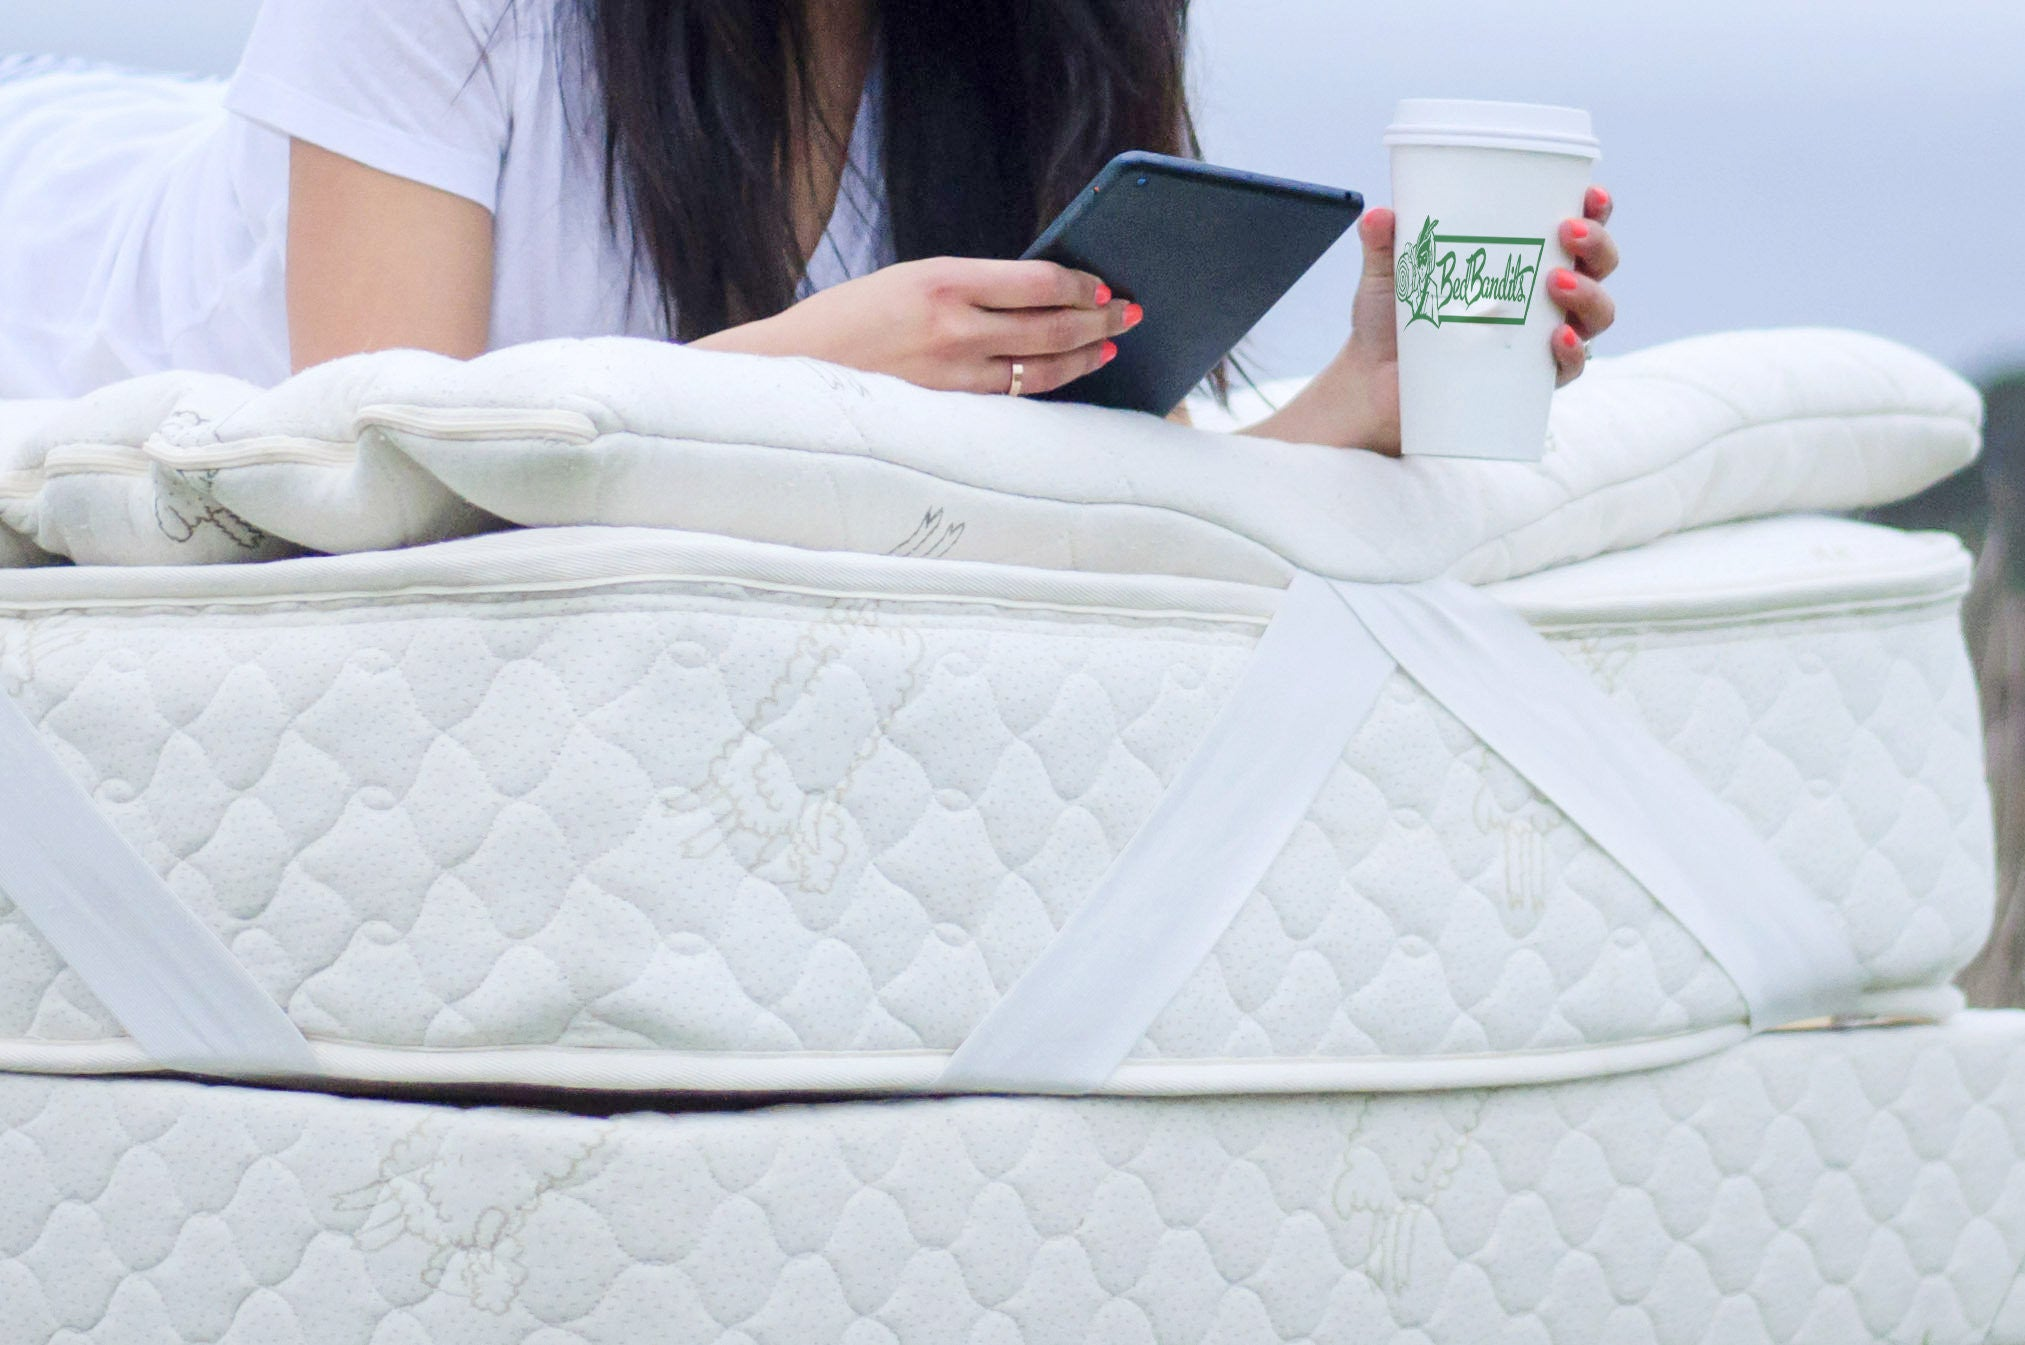 clearance sale coma natural mattress topper